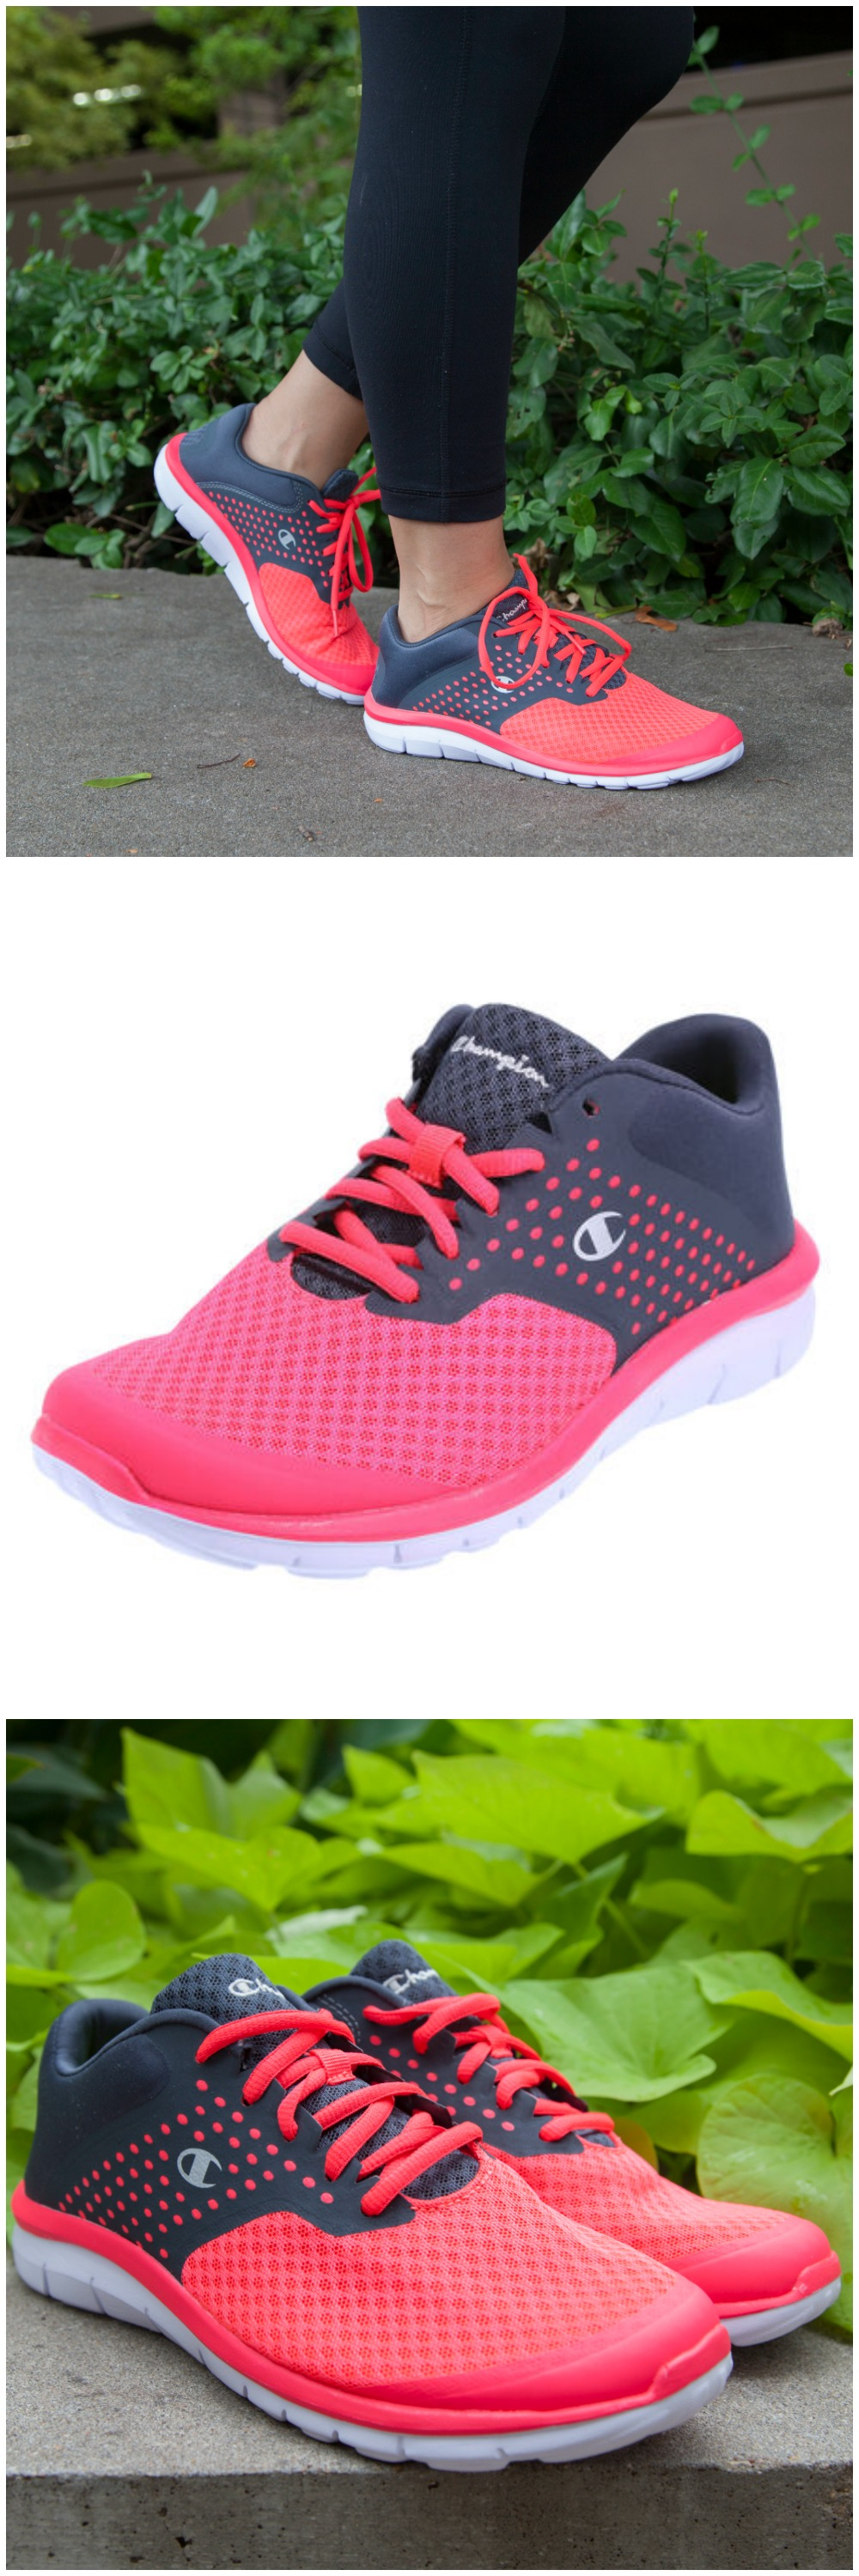 nike athletic training shoes fitness trainers nike